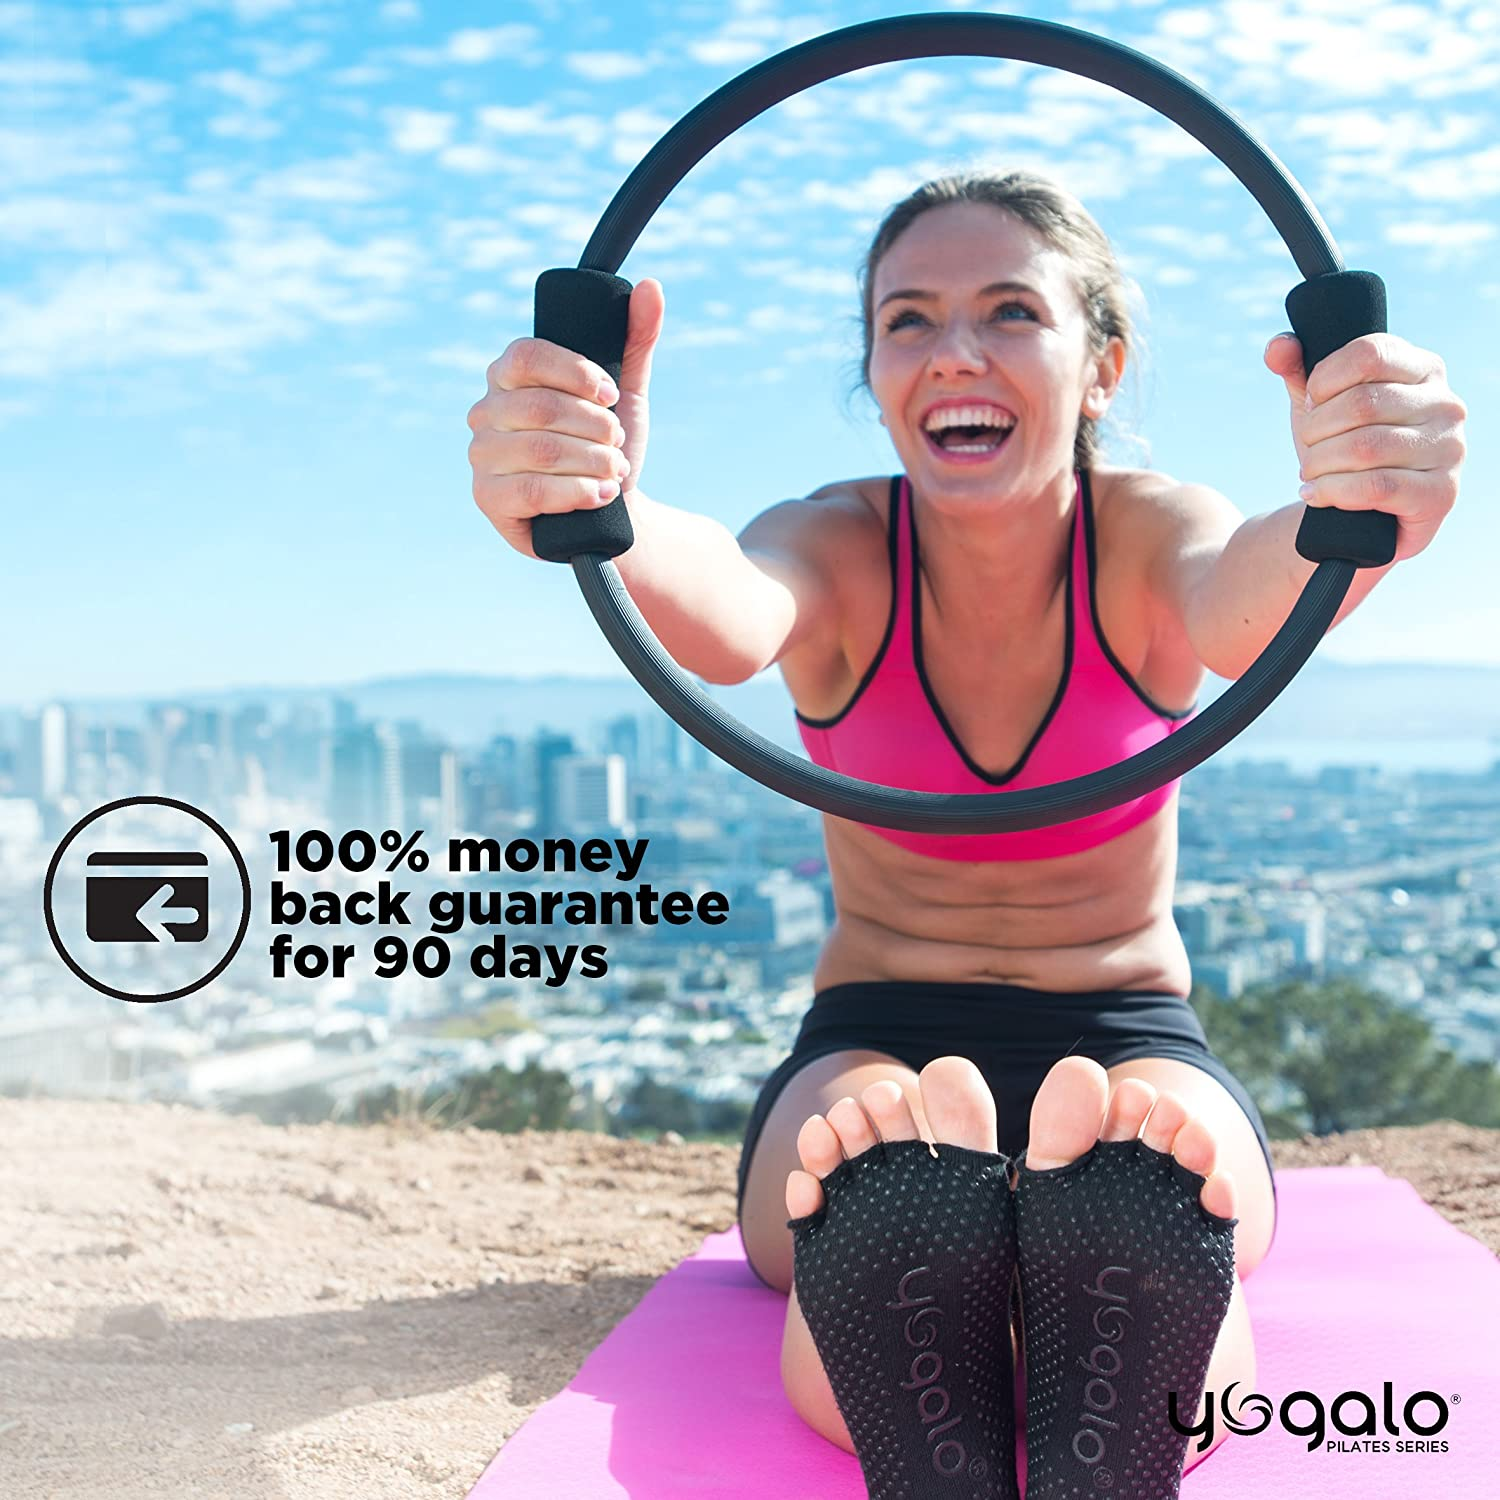 Power Resistance Exercise Circle Strength Flexibility Thigh Toner Yogalo Pilates Series Pilates Ring Sculpting 14 Inch Dual Grip Ring Fitness Magic Circle Toning